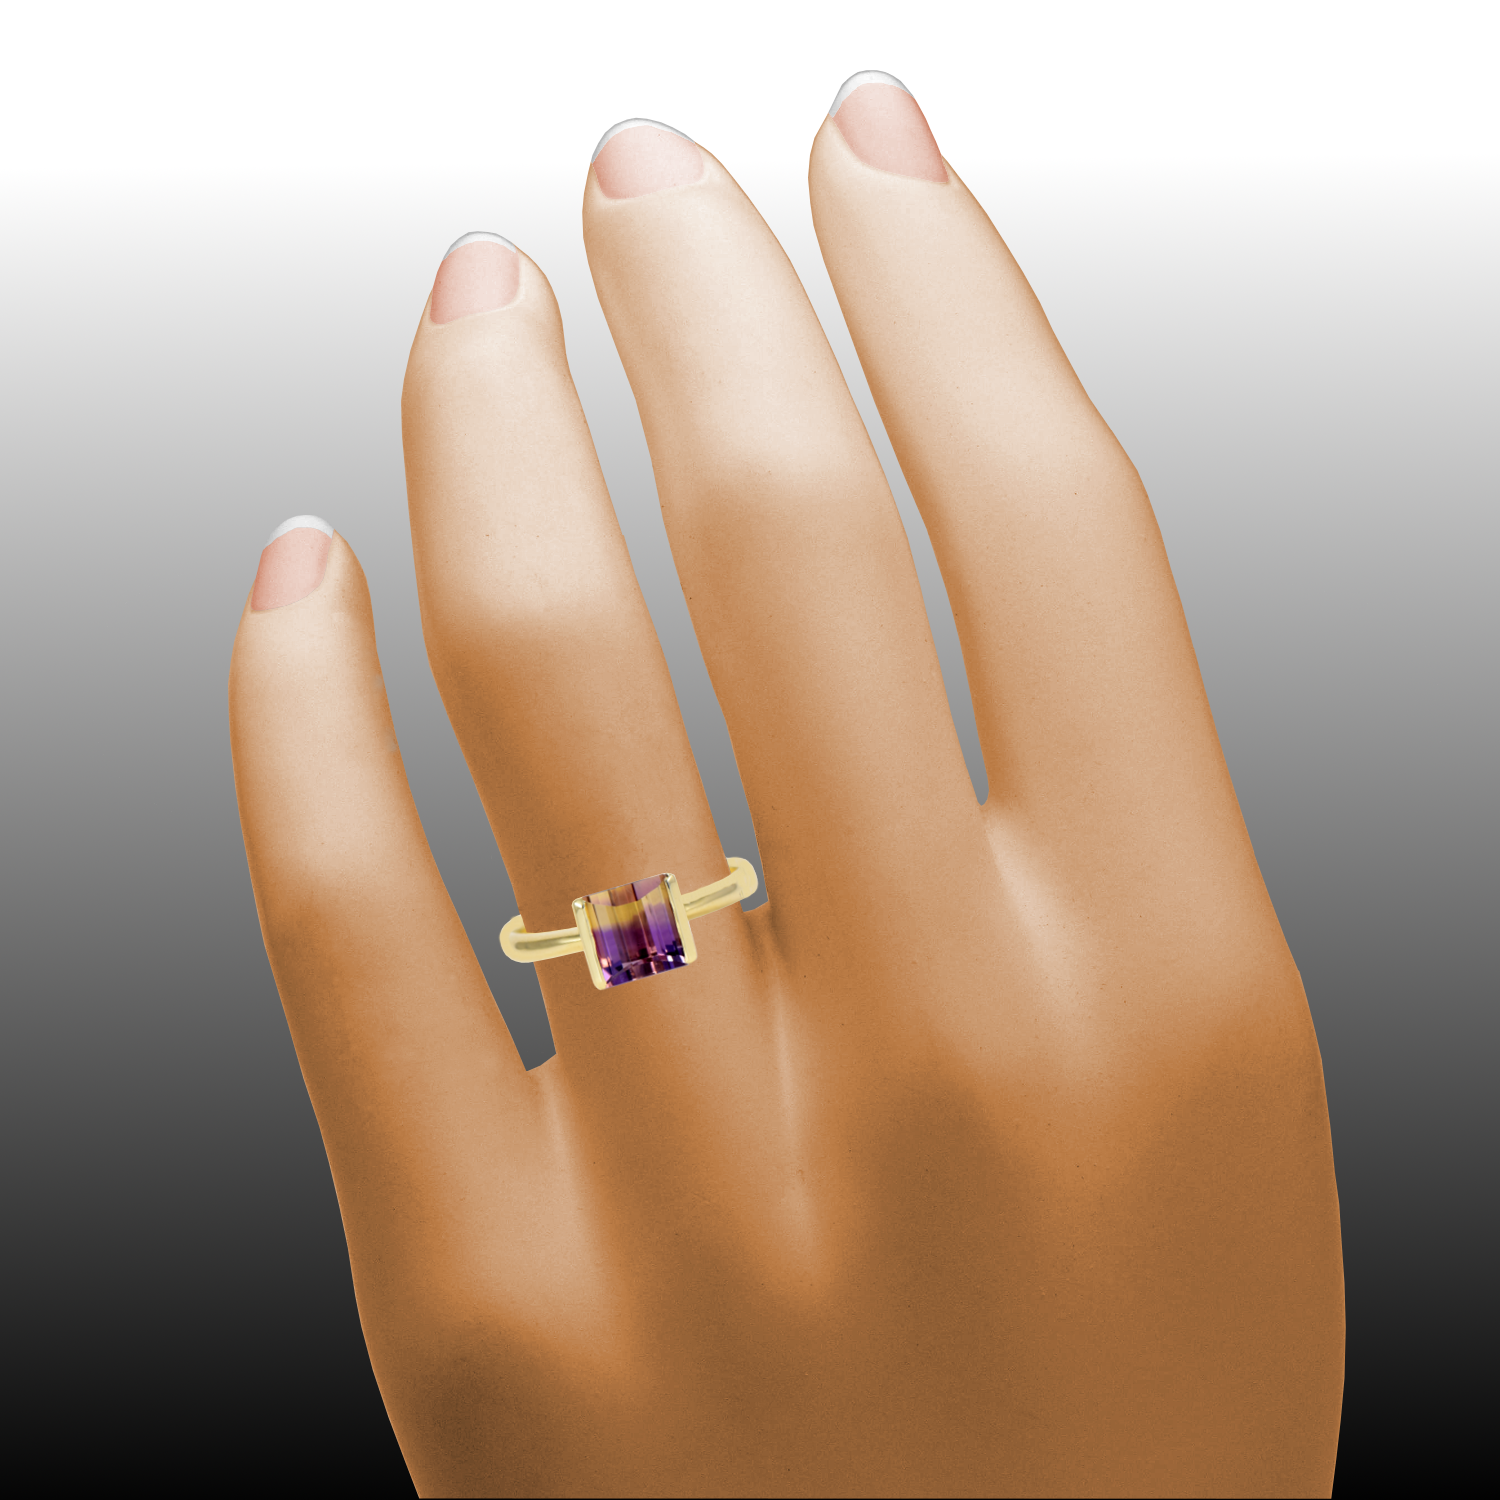 Contemporary Solitaire Ring with Designer Cut Ametrine in 18k Gold by Pratima Design Fine Art Jewelry